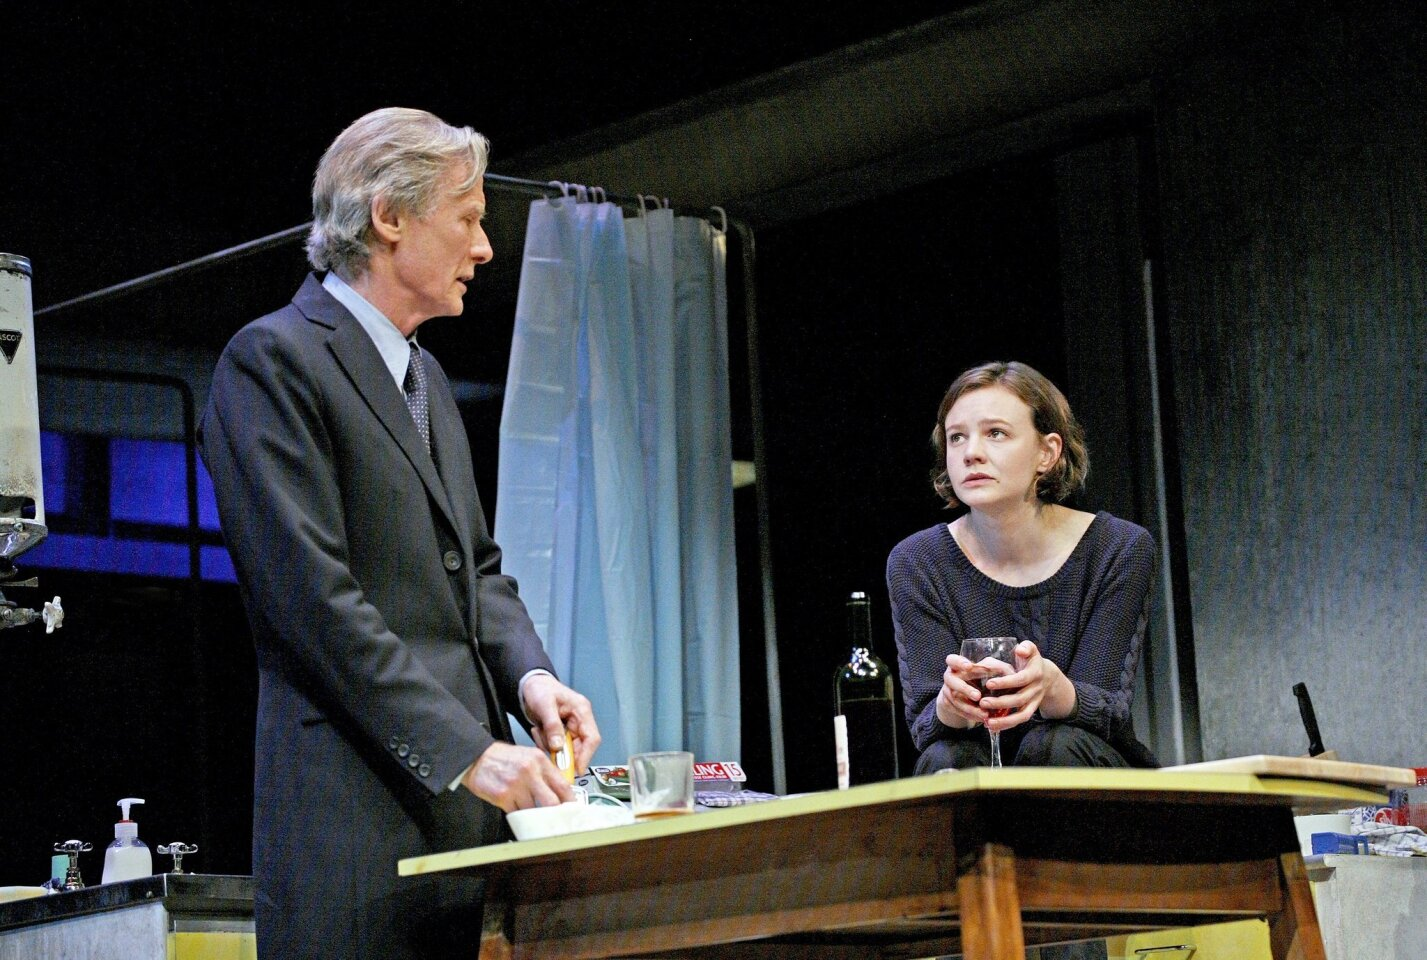 """Bill Nighy, left, and Carey Mulligan in a scene during a performance of """"Skylight,"""" which opened April 2 at the Golden Theater in New York."""